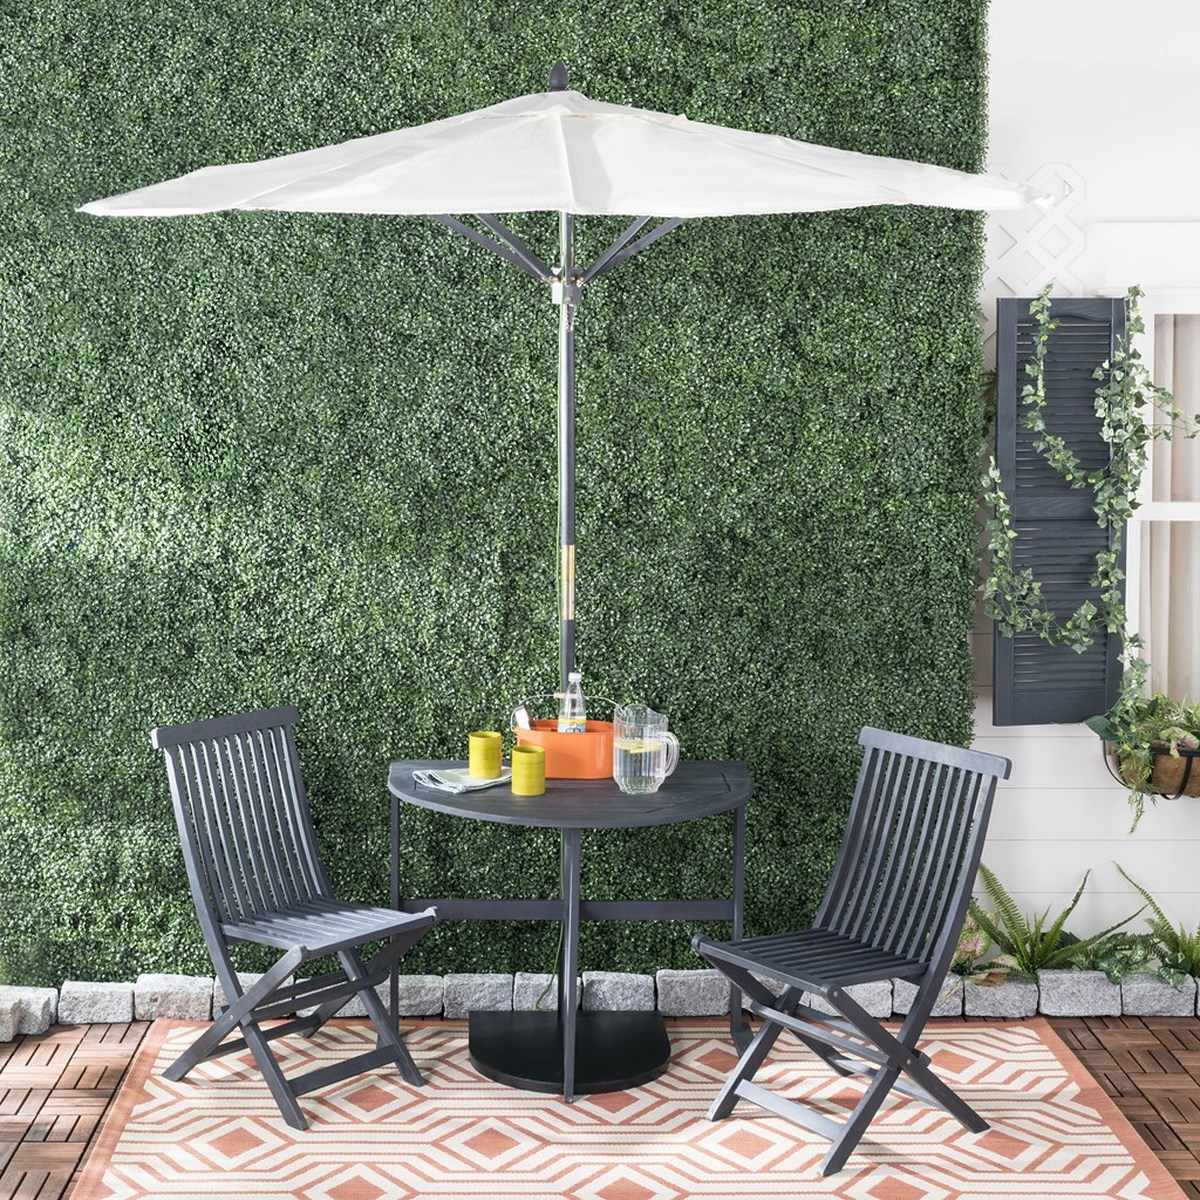 Half Patio Set Brings Bistro Style Charm To Any Outdoor Living Area Sheltered By A Bold Navy Umbrella Its Acacia Wood Features Natural Teak Finish